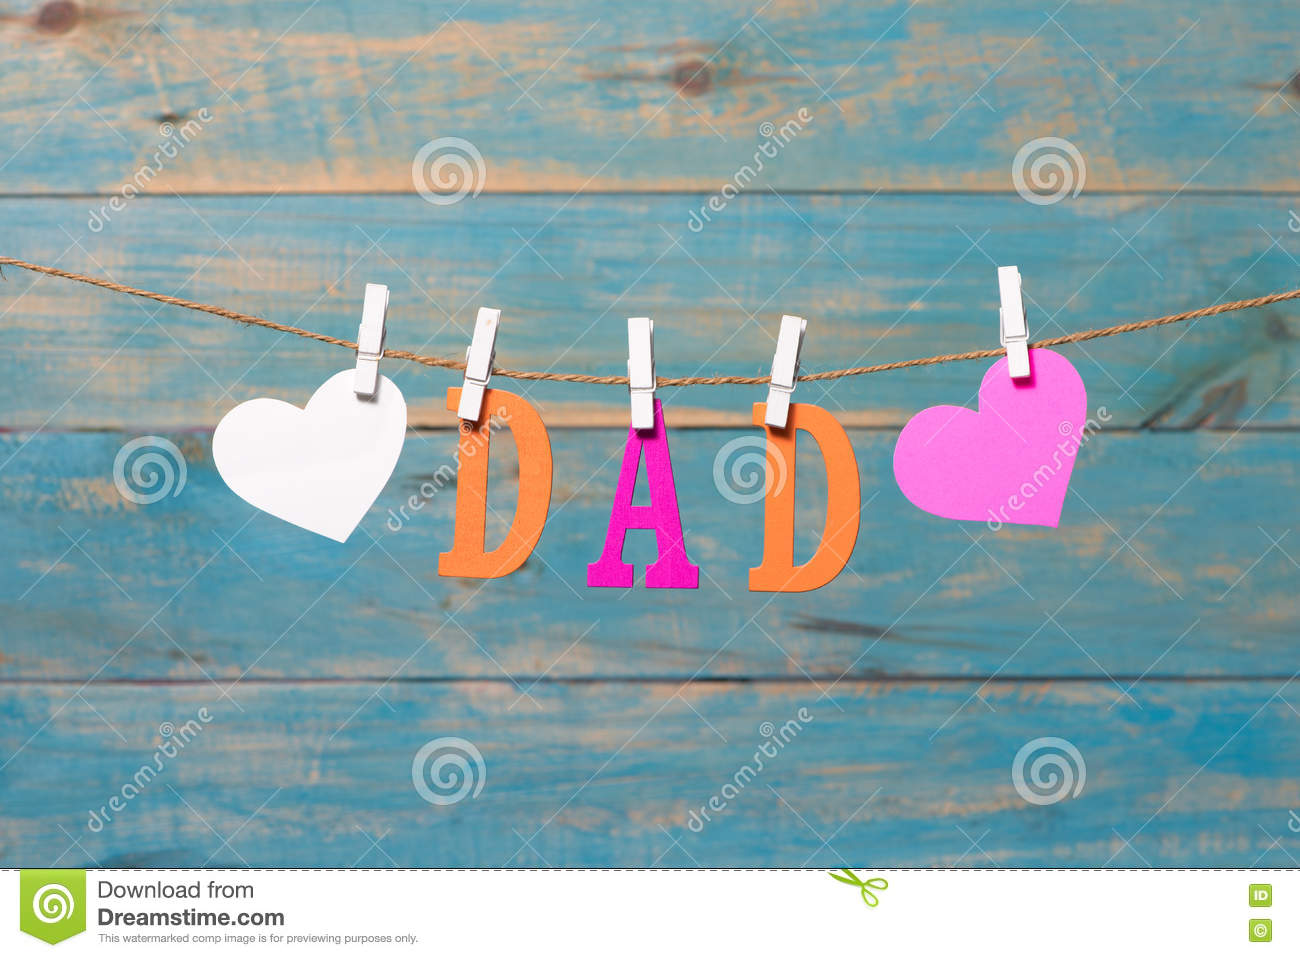 dad letters fathers day message with hearts hanging with clothespins over blue wooden board